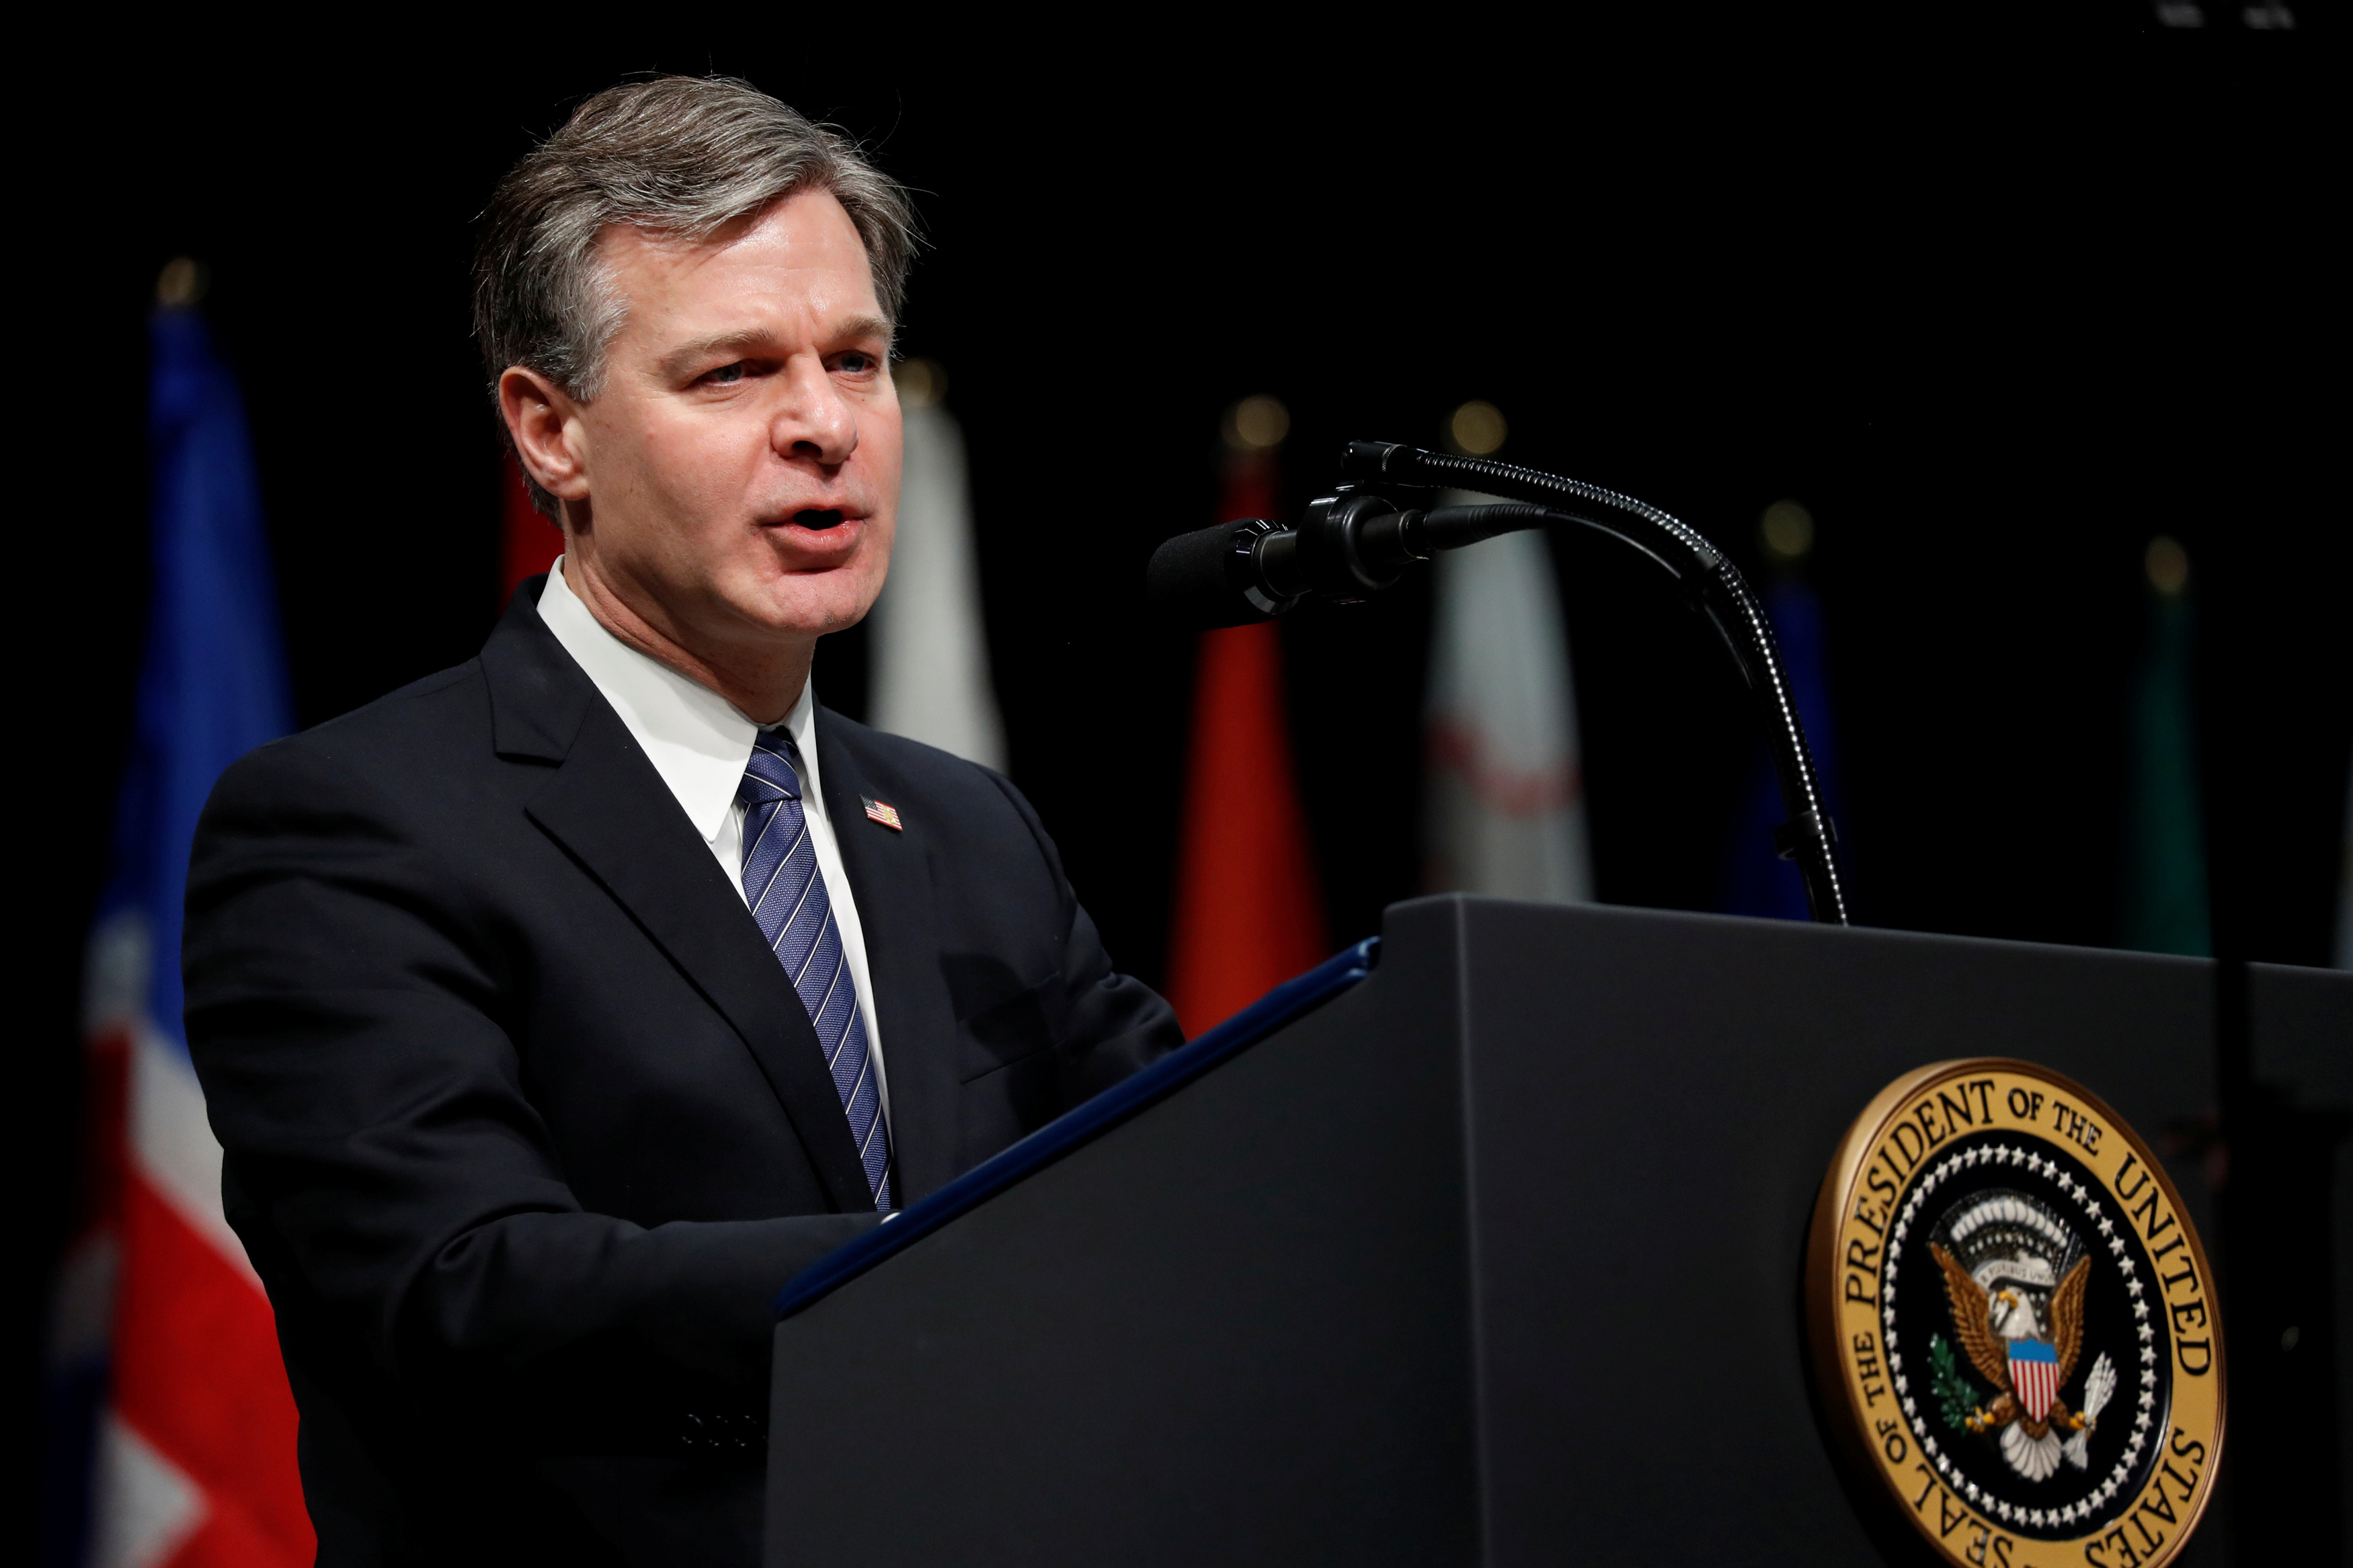 FILE PHOTO: FBI Director Christopher Wray delivers remarks to a graduation ceremony at the FBI Academy on the grounds of Marine Corps Base Quantico in Quantico, Virginia, U.S. December 15, 2017.